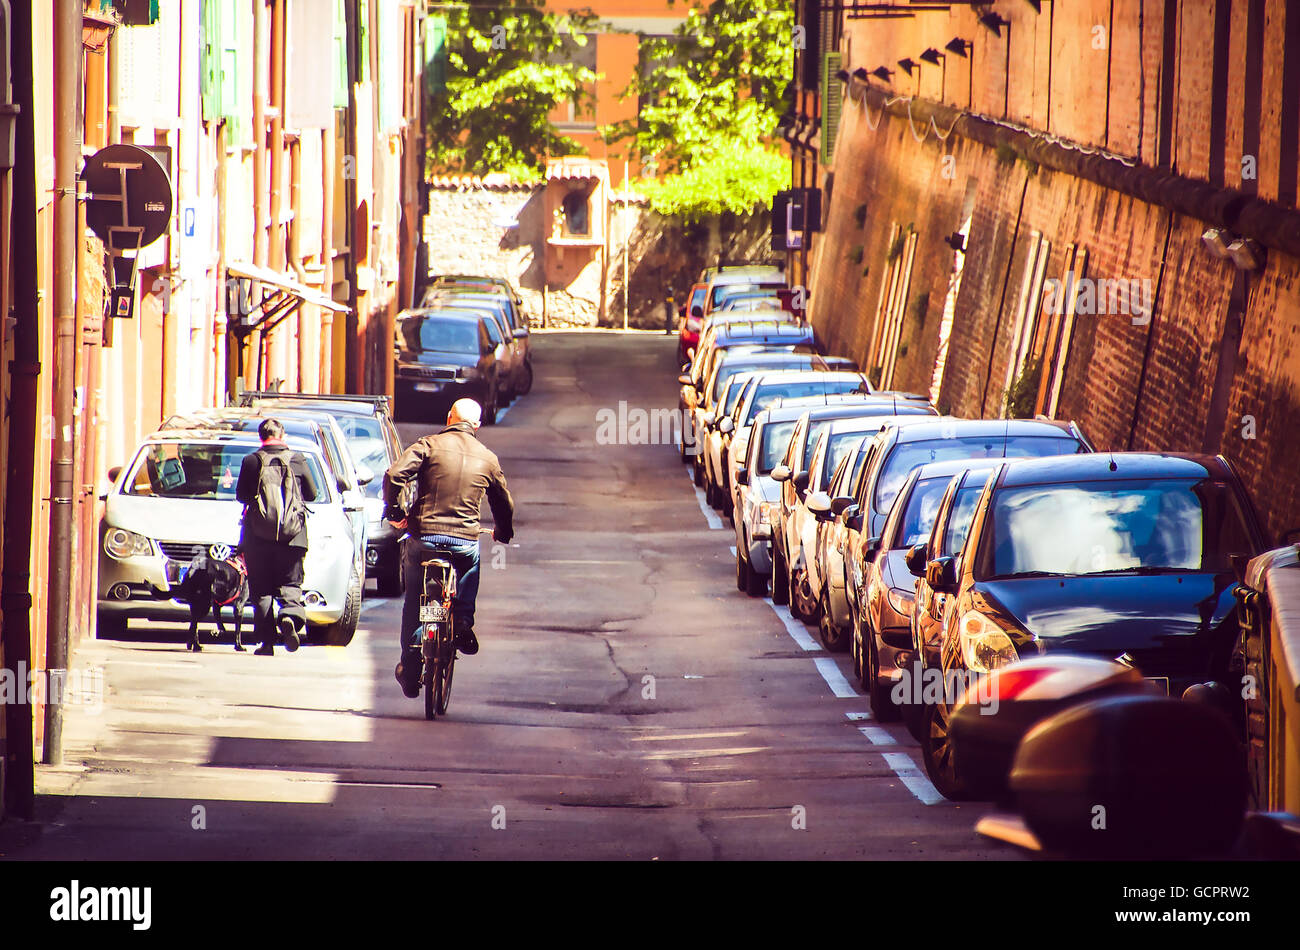 Bologna, Italy bald man cross street with bicycle alongside a row of parked cars - Stock Image